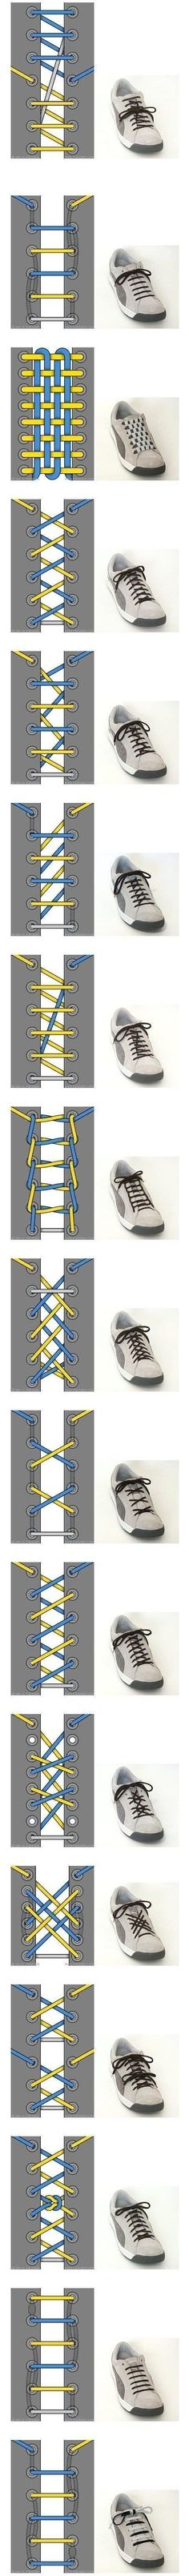 Cool Ways To Tie Your Shoe Laces ~ shoe lace patterns ~ Will have to remember this when the kids finally get shoes with laces. Your Shoes, Good To Know, Life Hacks, Creations, Geek Stuff, Good Things, Manly Things, Simple Things, Mens Fashion